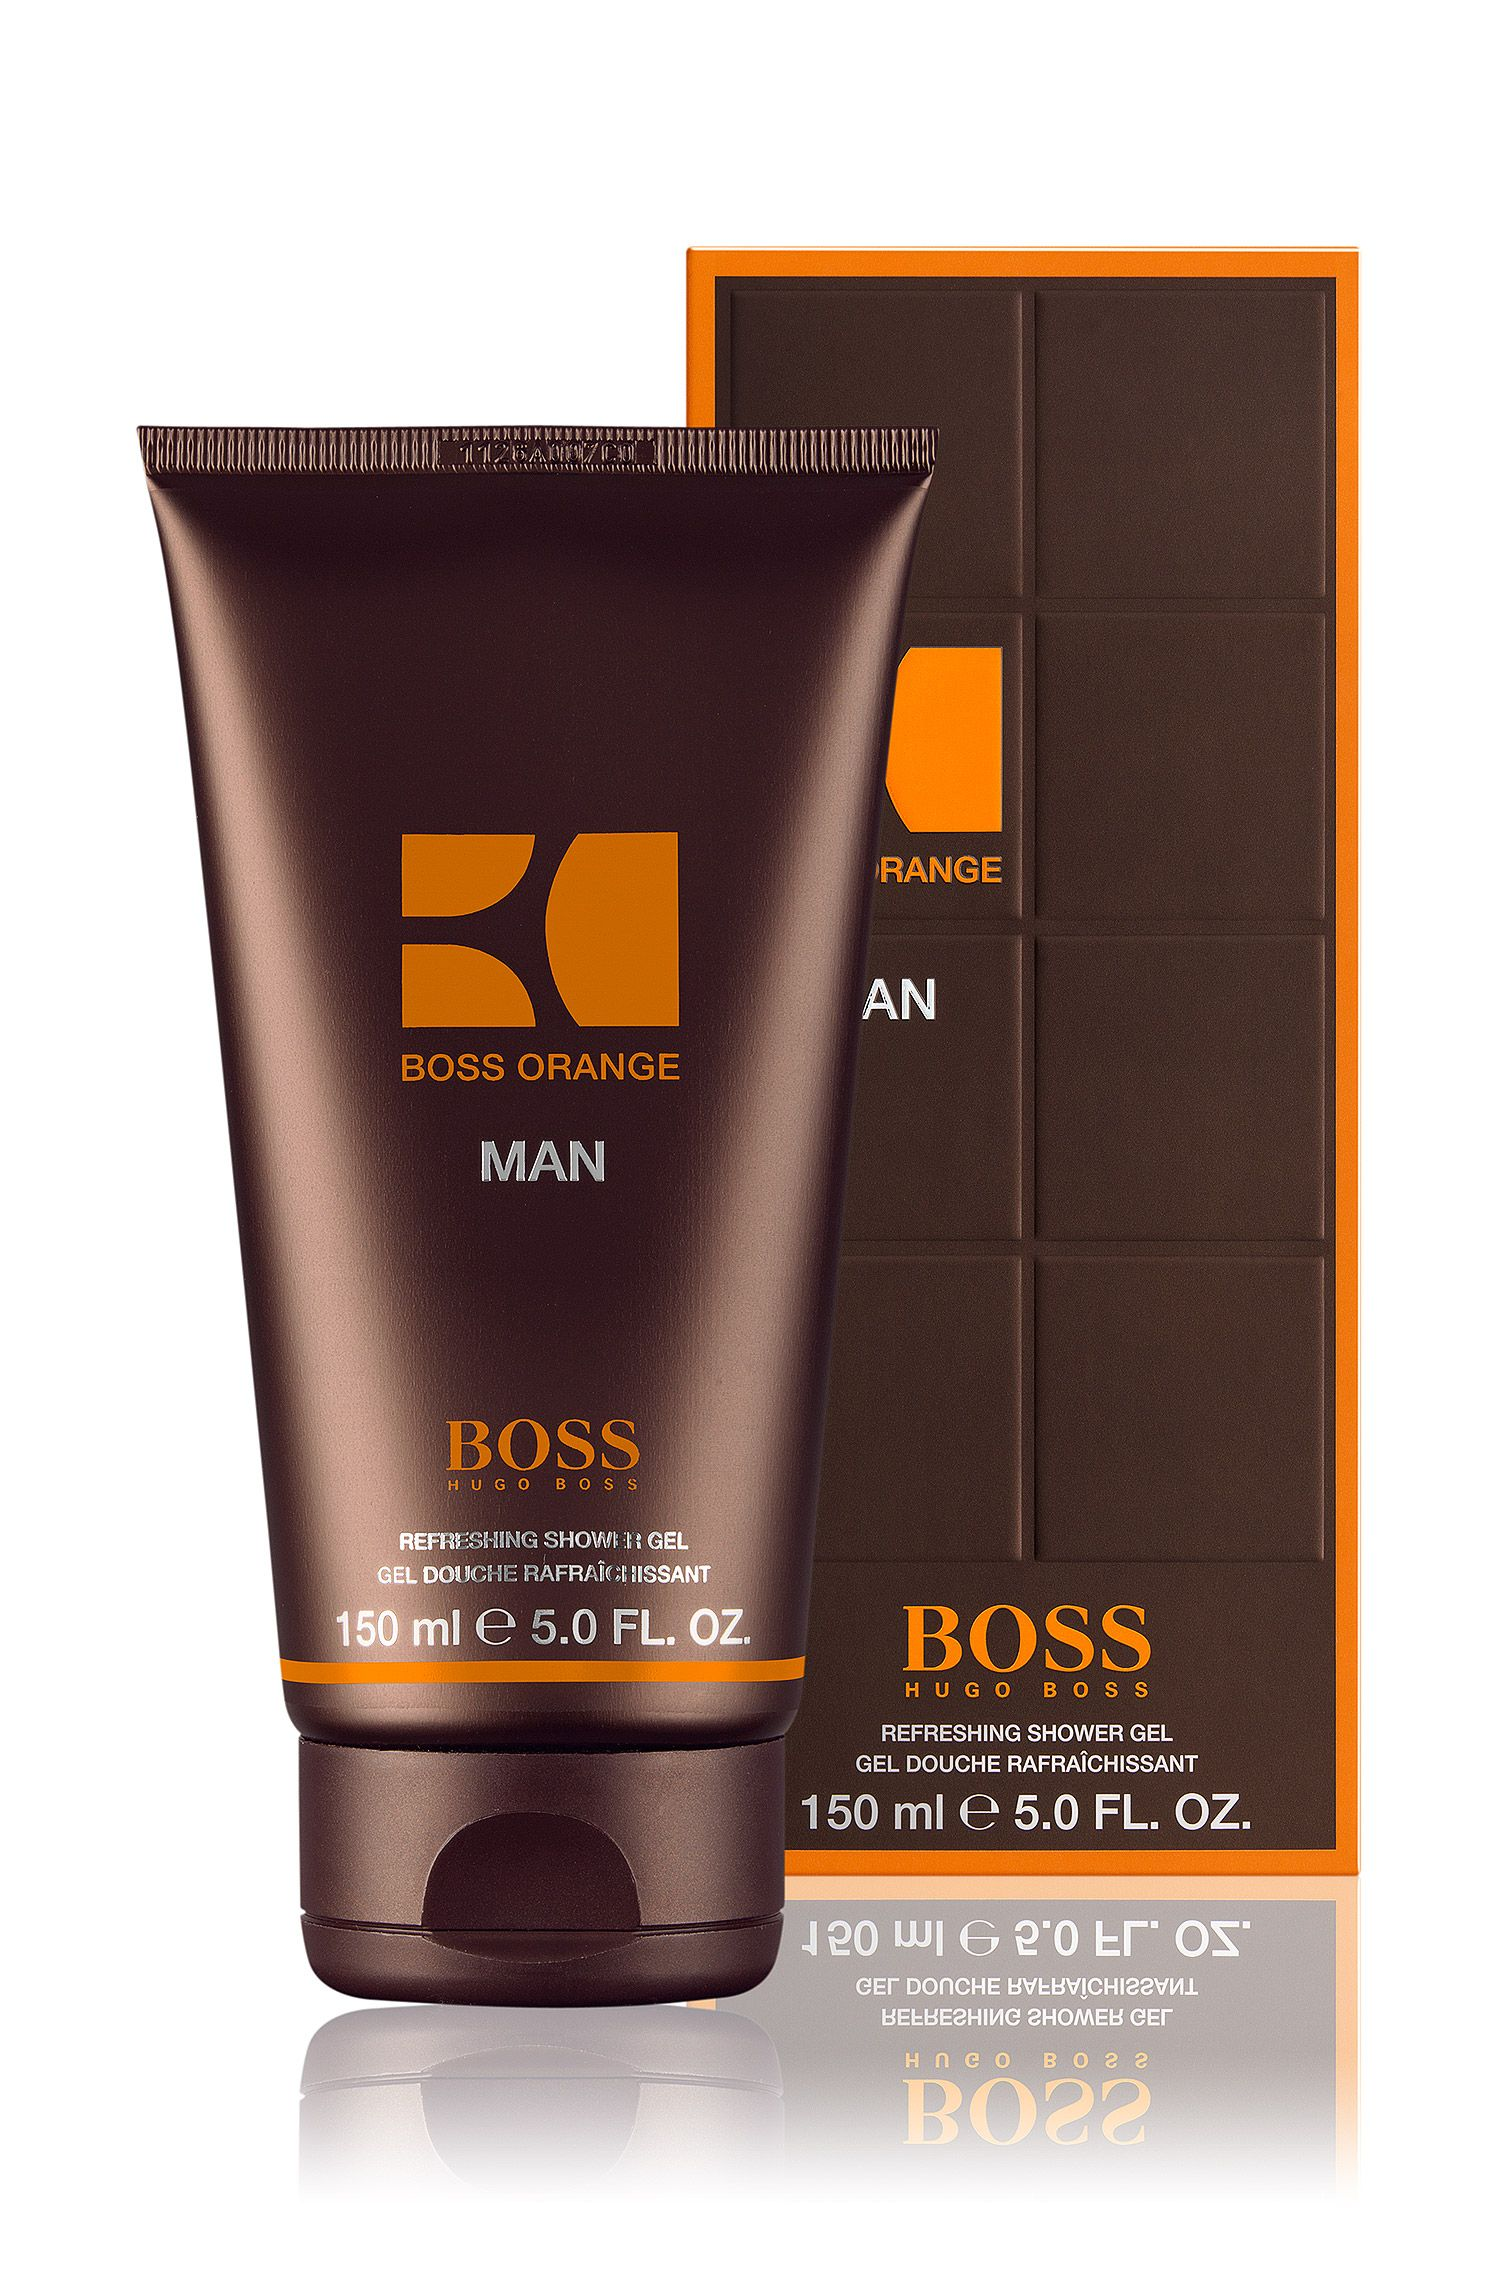 BOSS Orange Man doucheverzorging 150 ml U/C